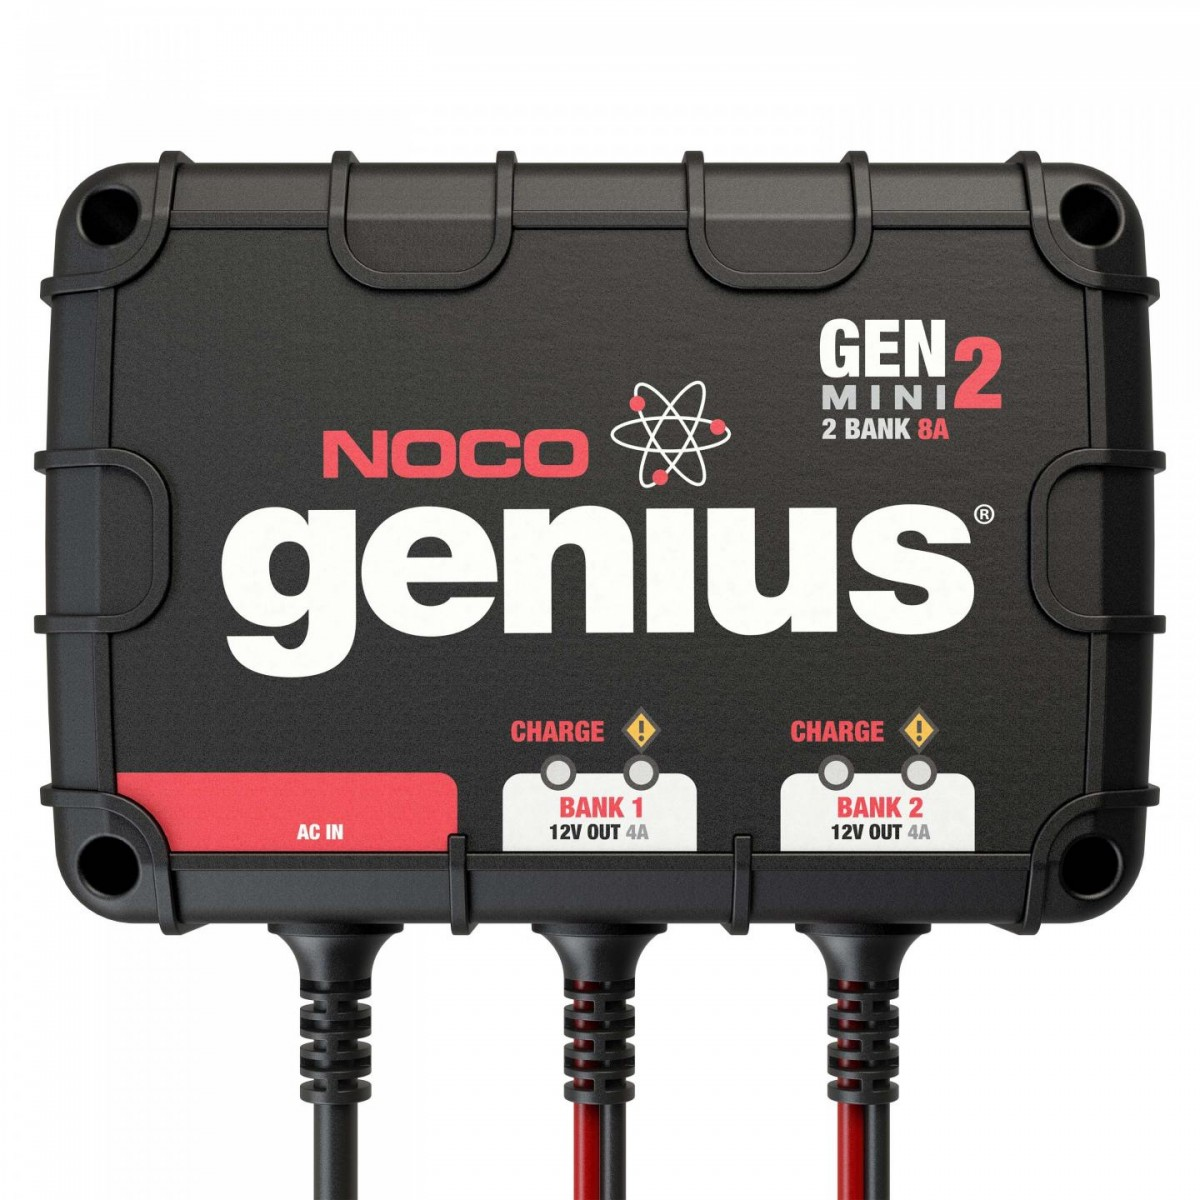 noco 2 bank 8a on board battery charger genm2 48V Battery Bank Wiring Diagram at 3 Bank On Board Battery Wiring Diagram